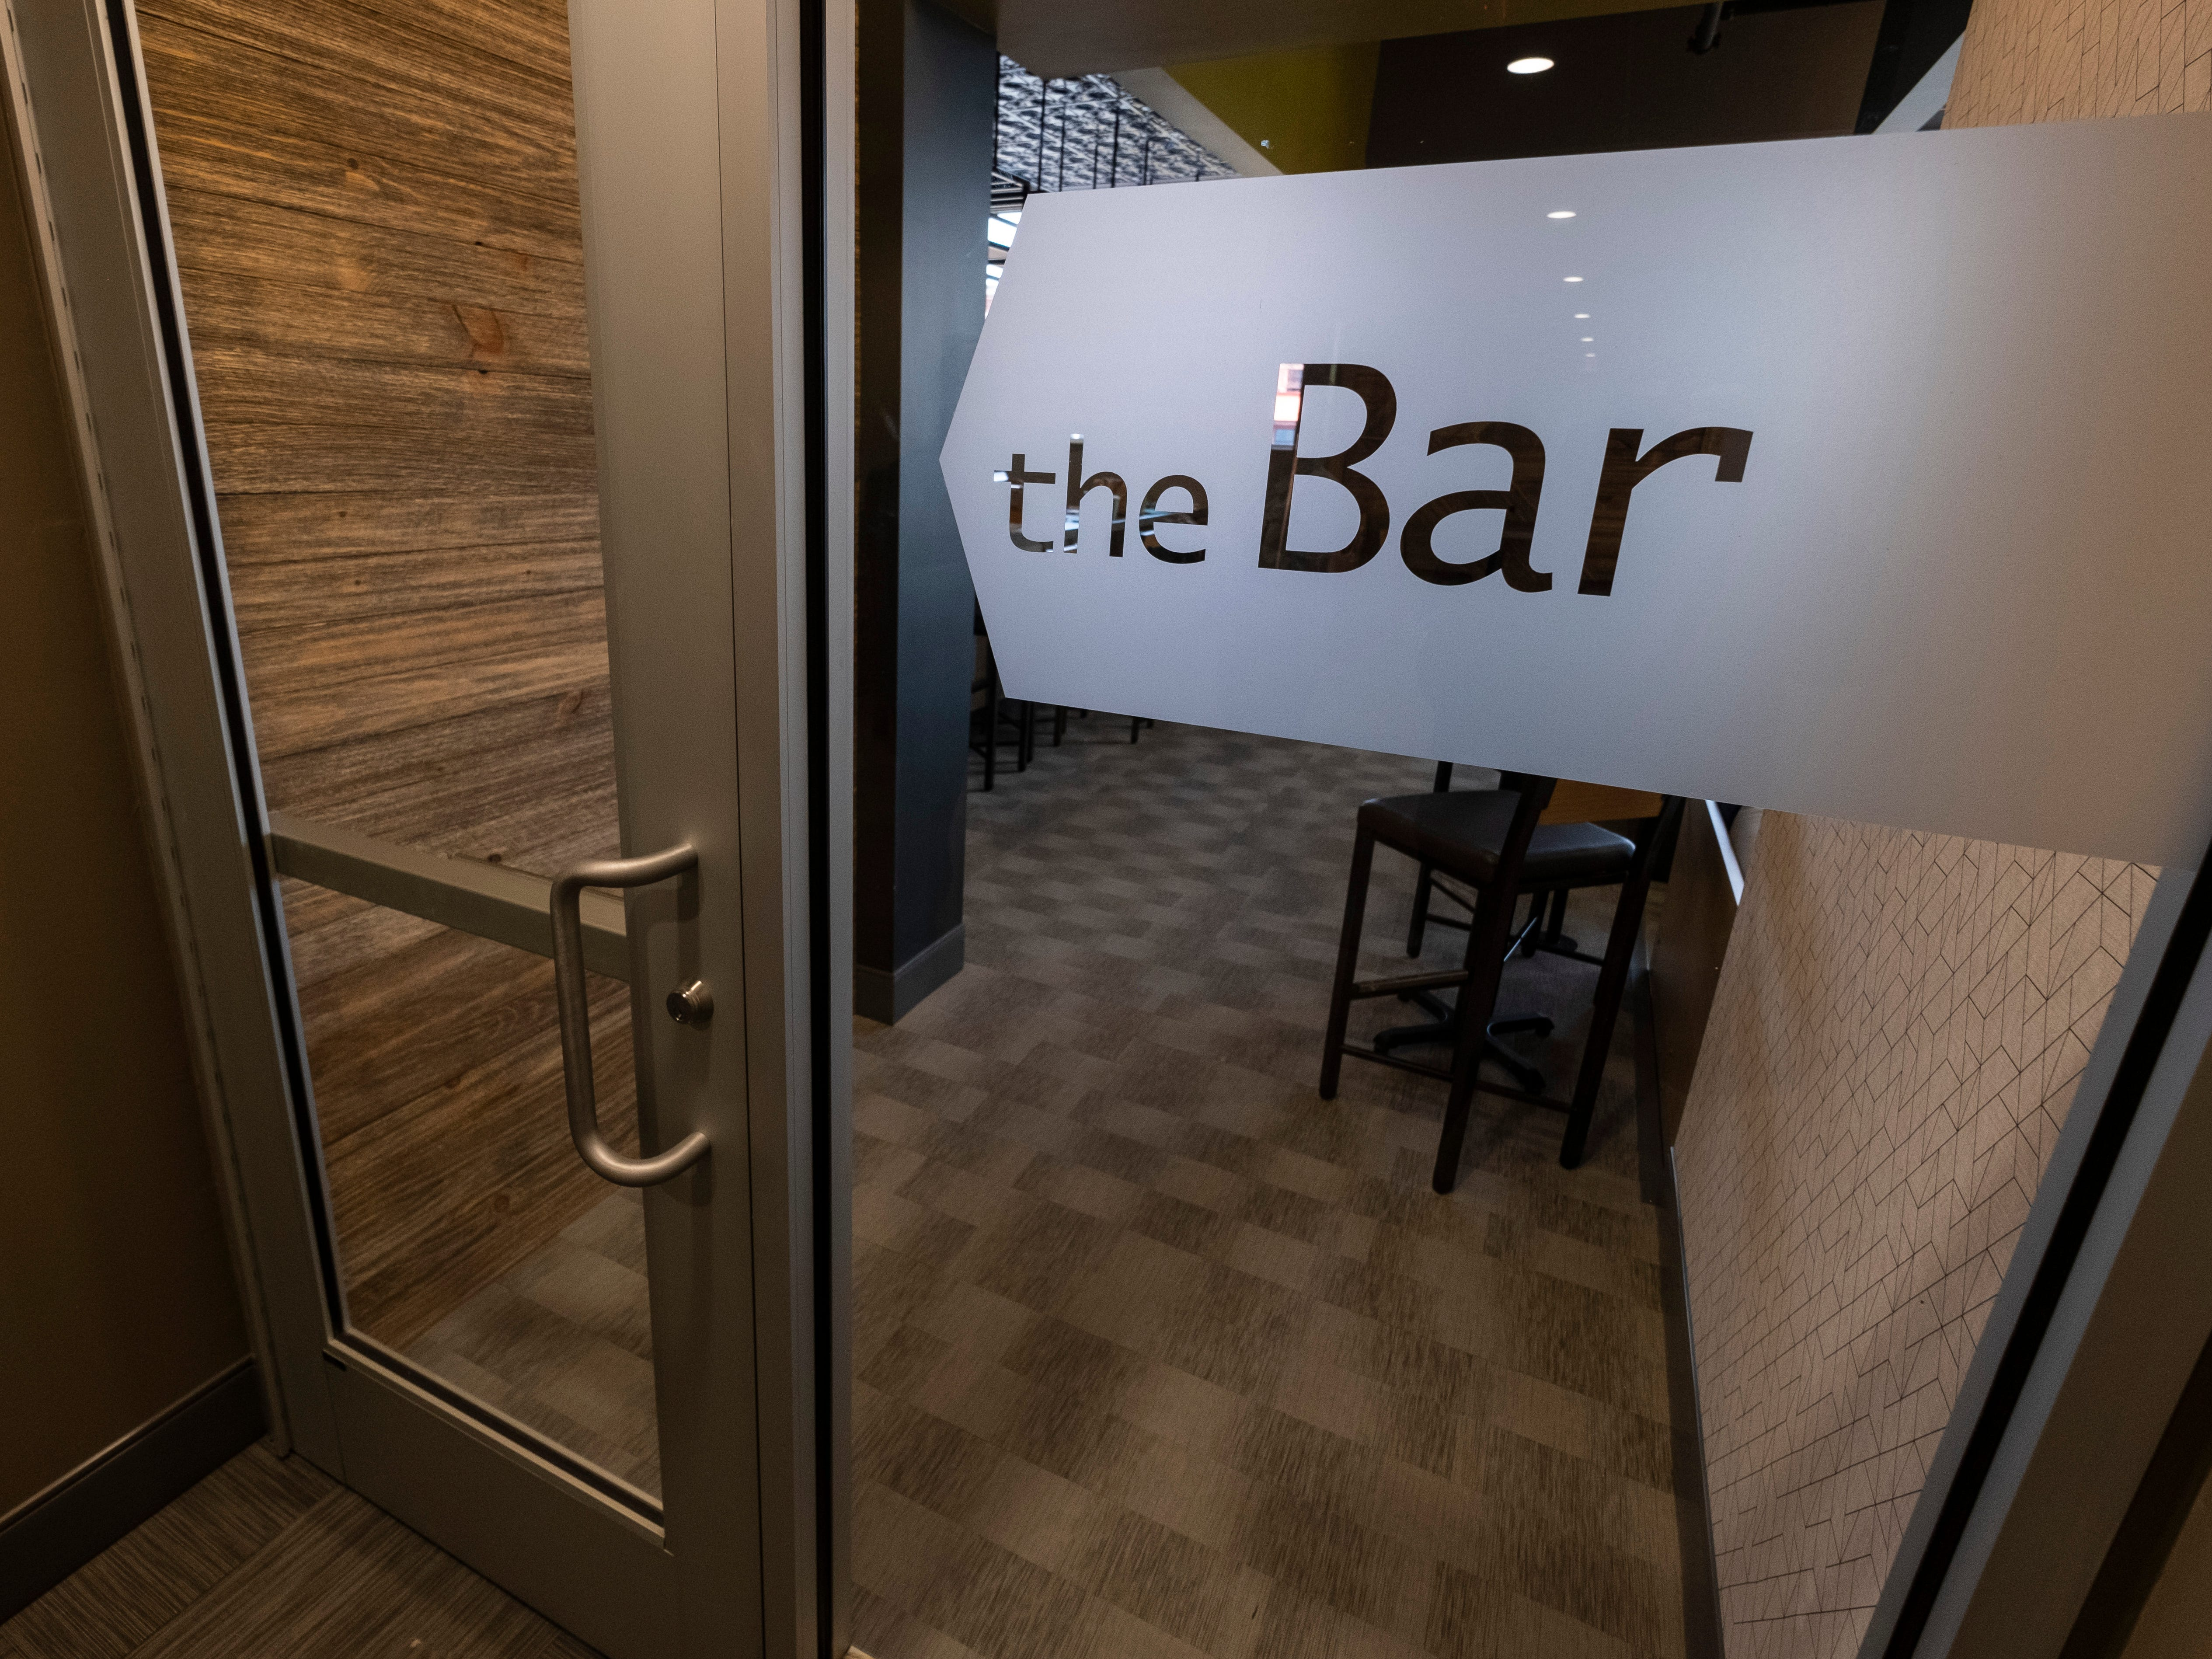 Developers plan to have TheBar in the CityFlats Hotel open soon, once they receive a liquor license.